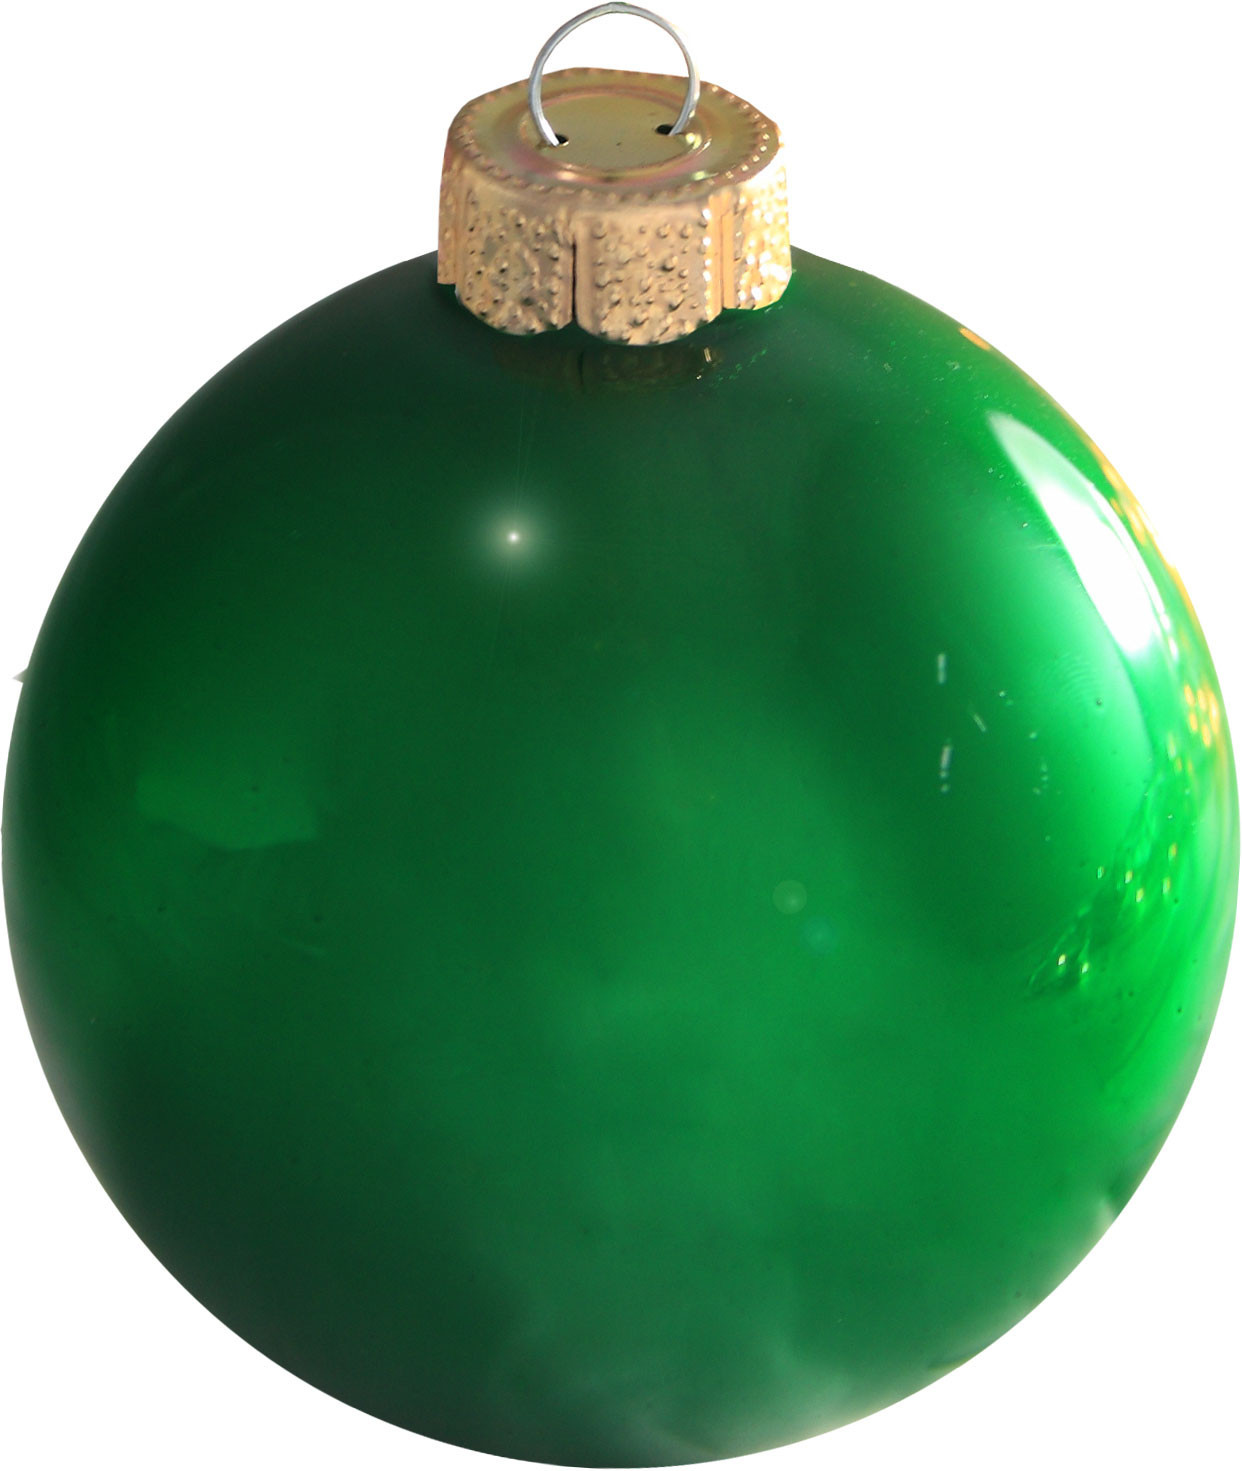 Christmas Ball ornaments Best Of Green Christmas ornaments – Happy Holidays Of Charming 42 Pictures Christmas Ball ornaments